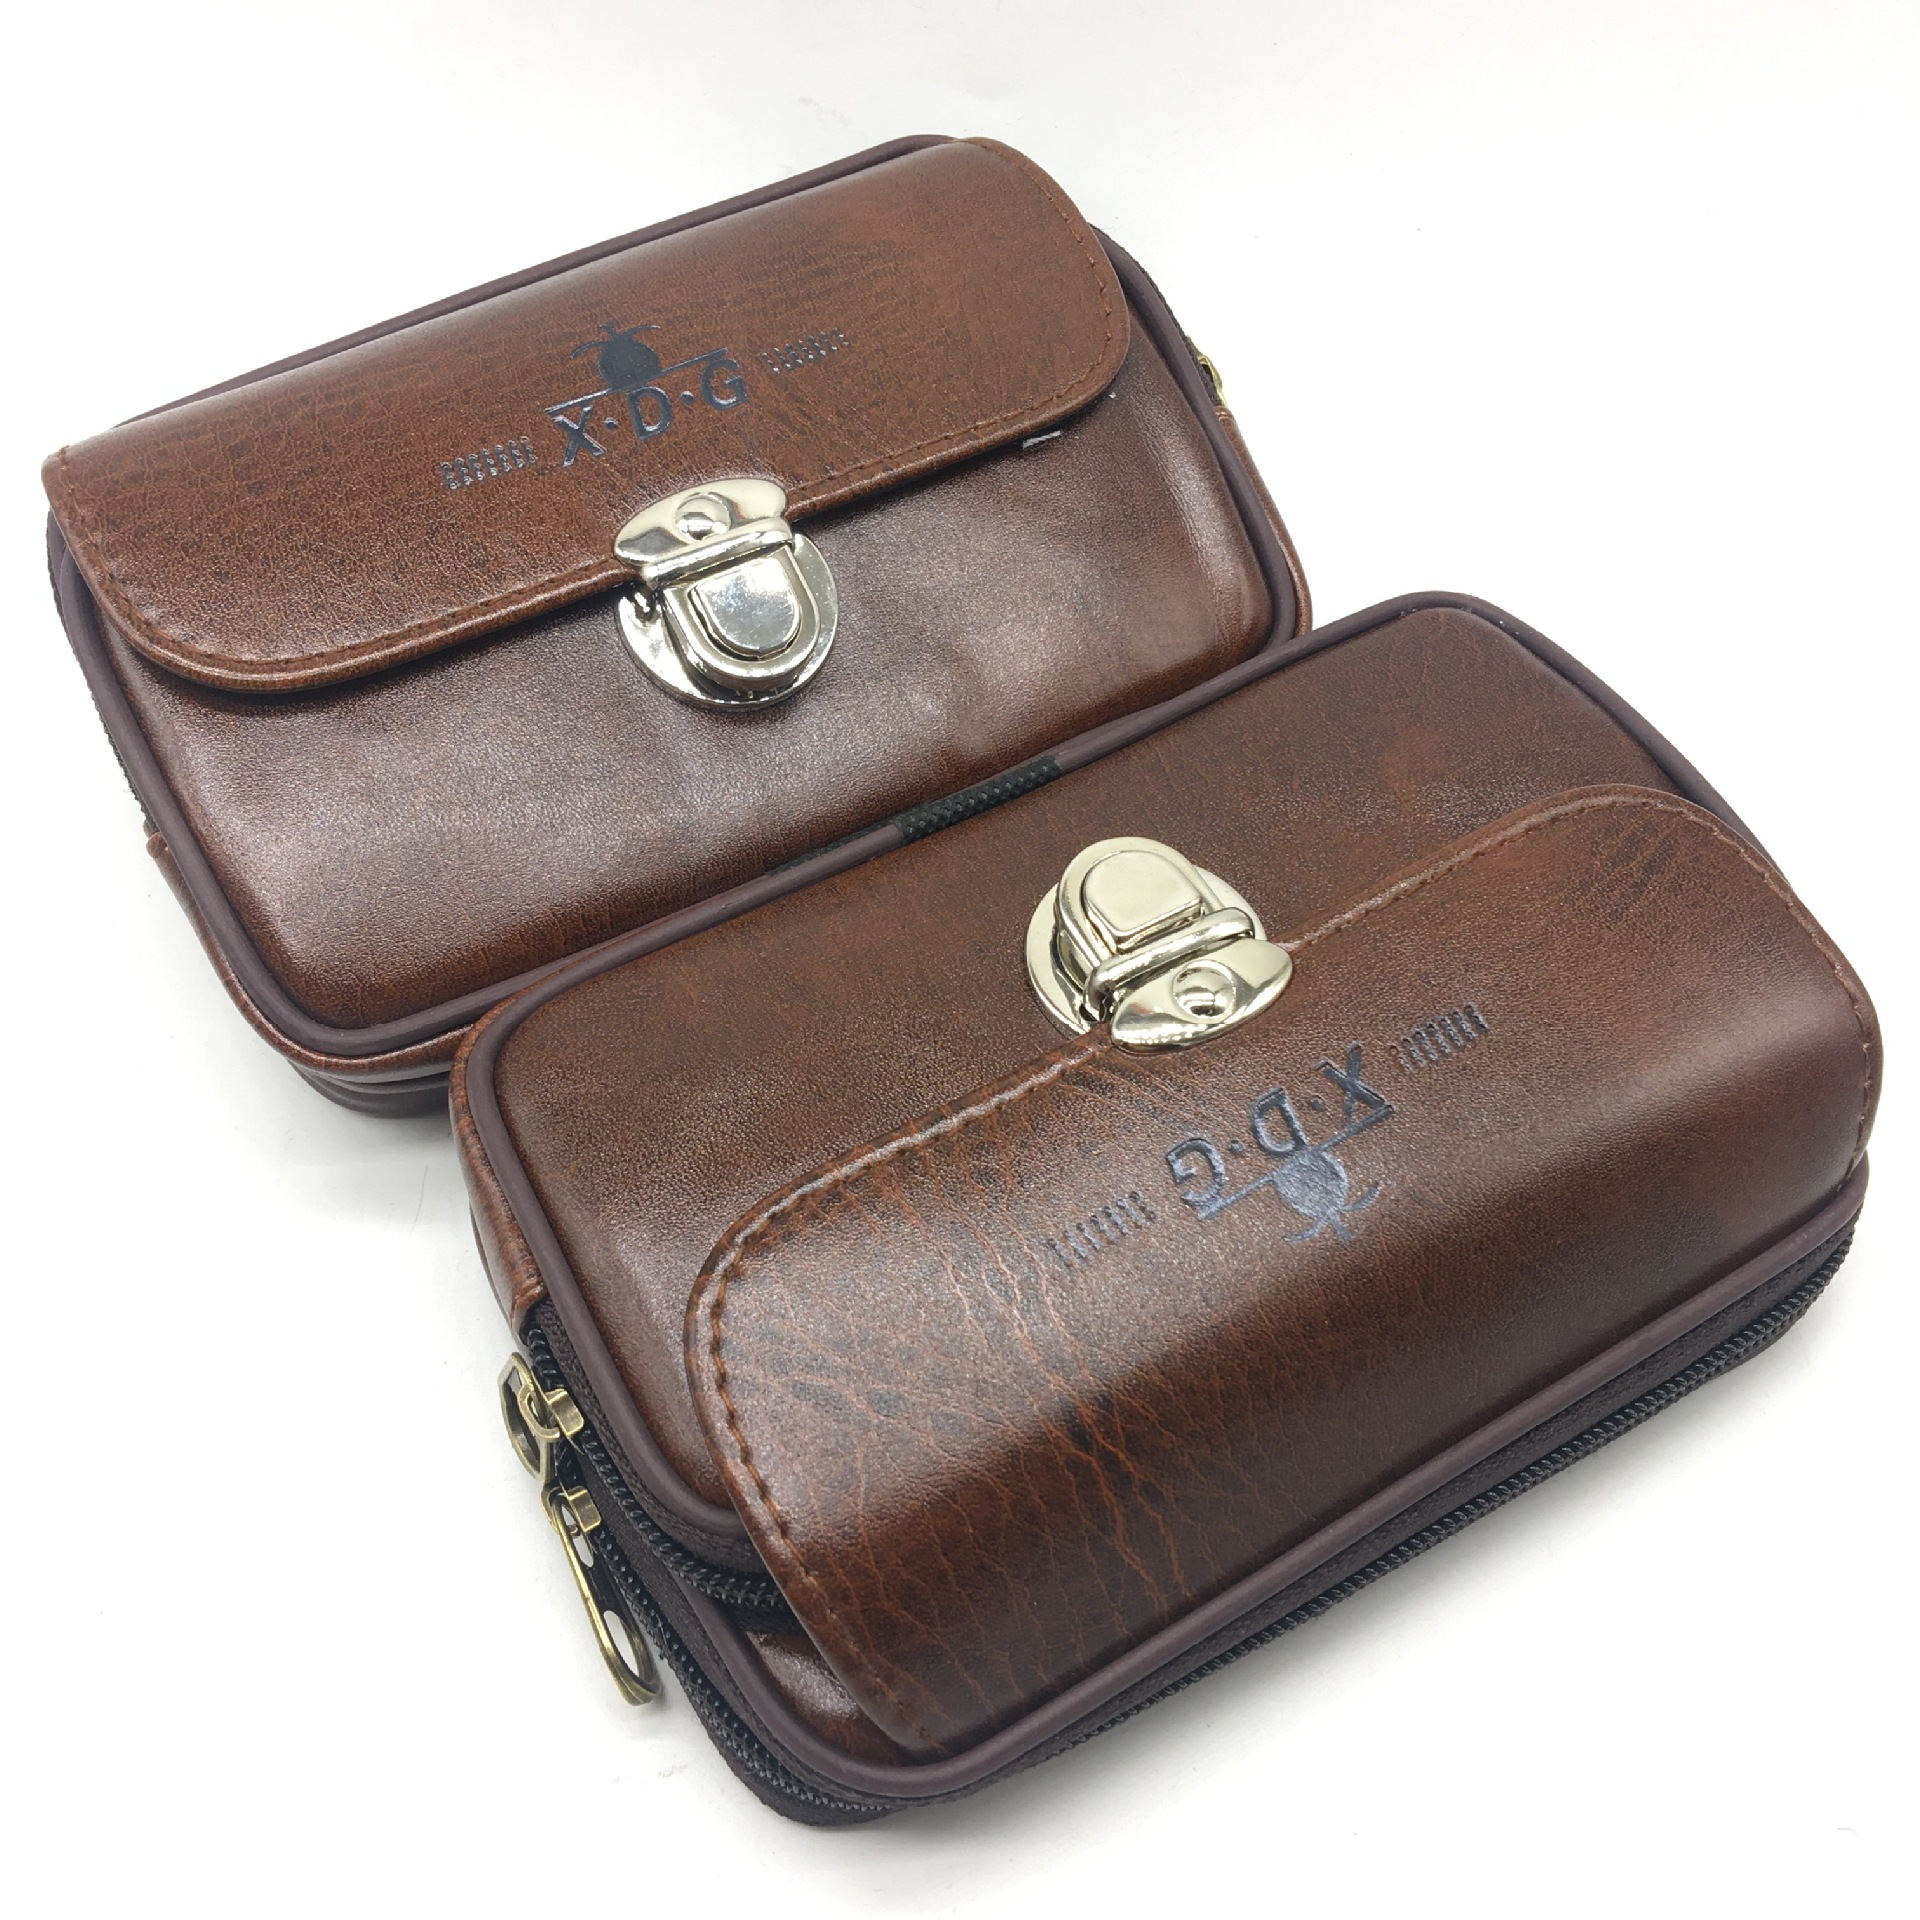 Vintage Rustic PU Leather Cellphone Bag with Double Latch for Birthday Presents